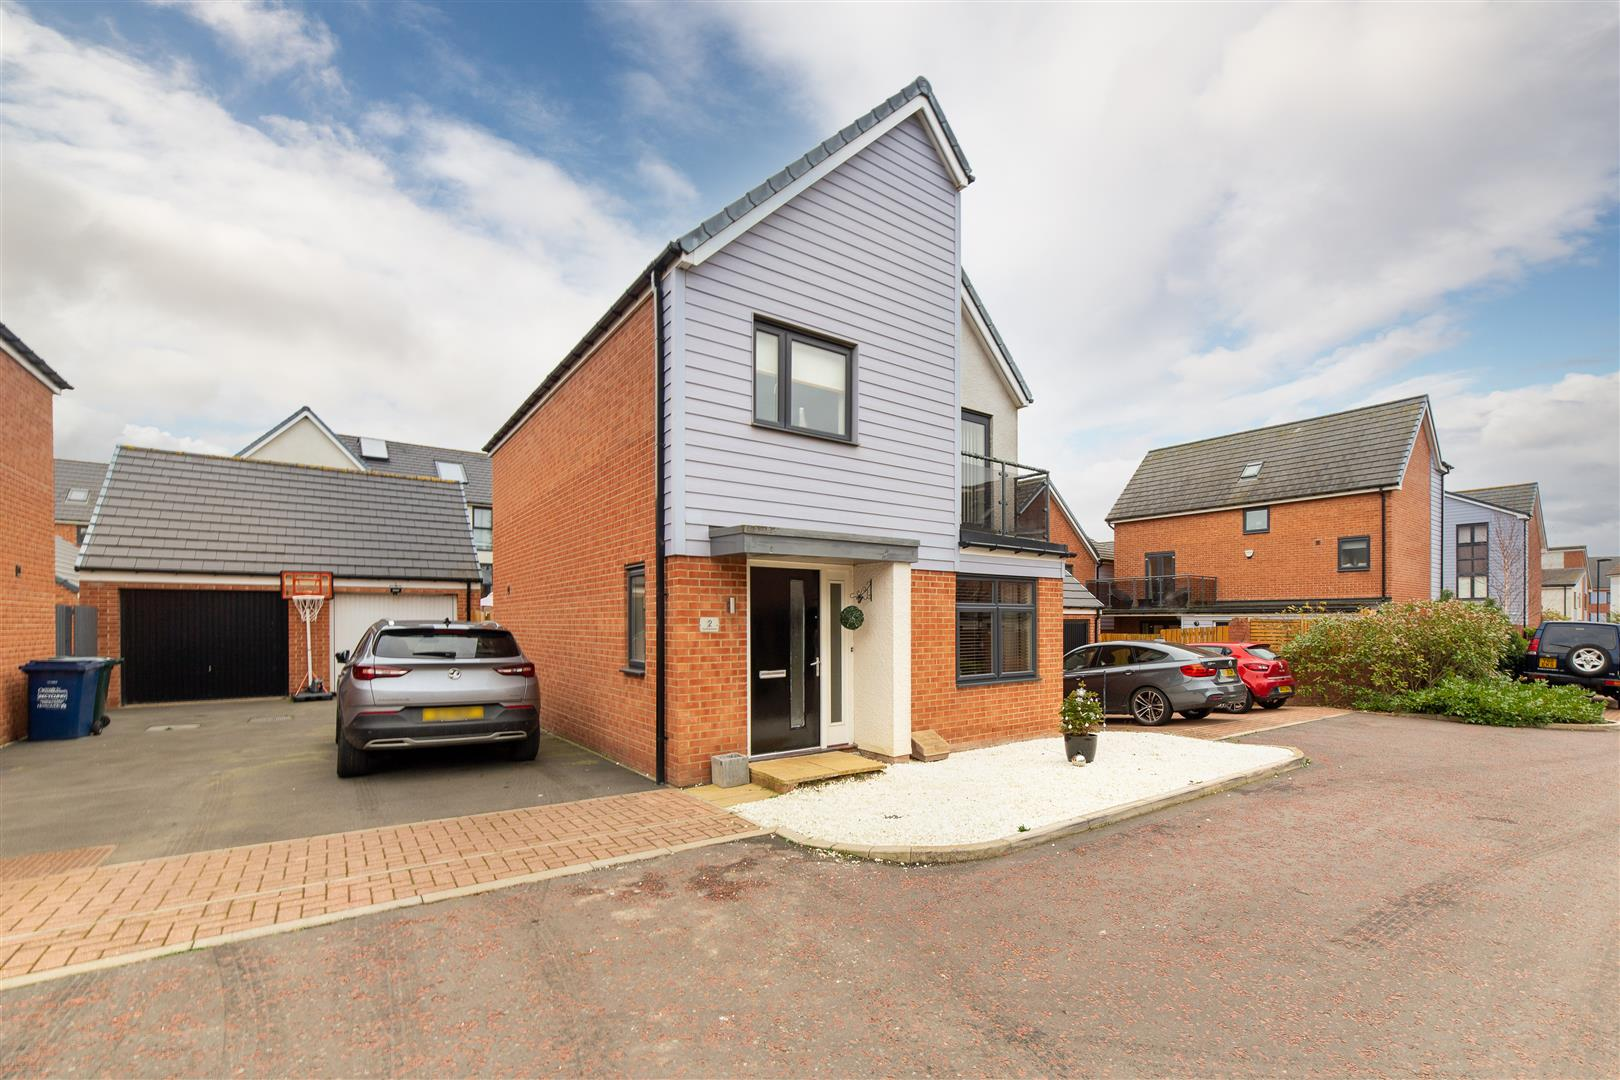 3 bed detached house for sale in Newcastle Upon Tyne, NE13 9BR, NE13